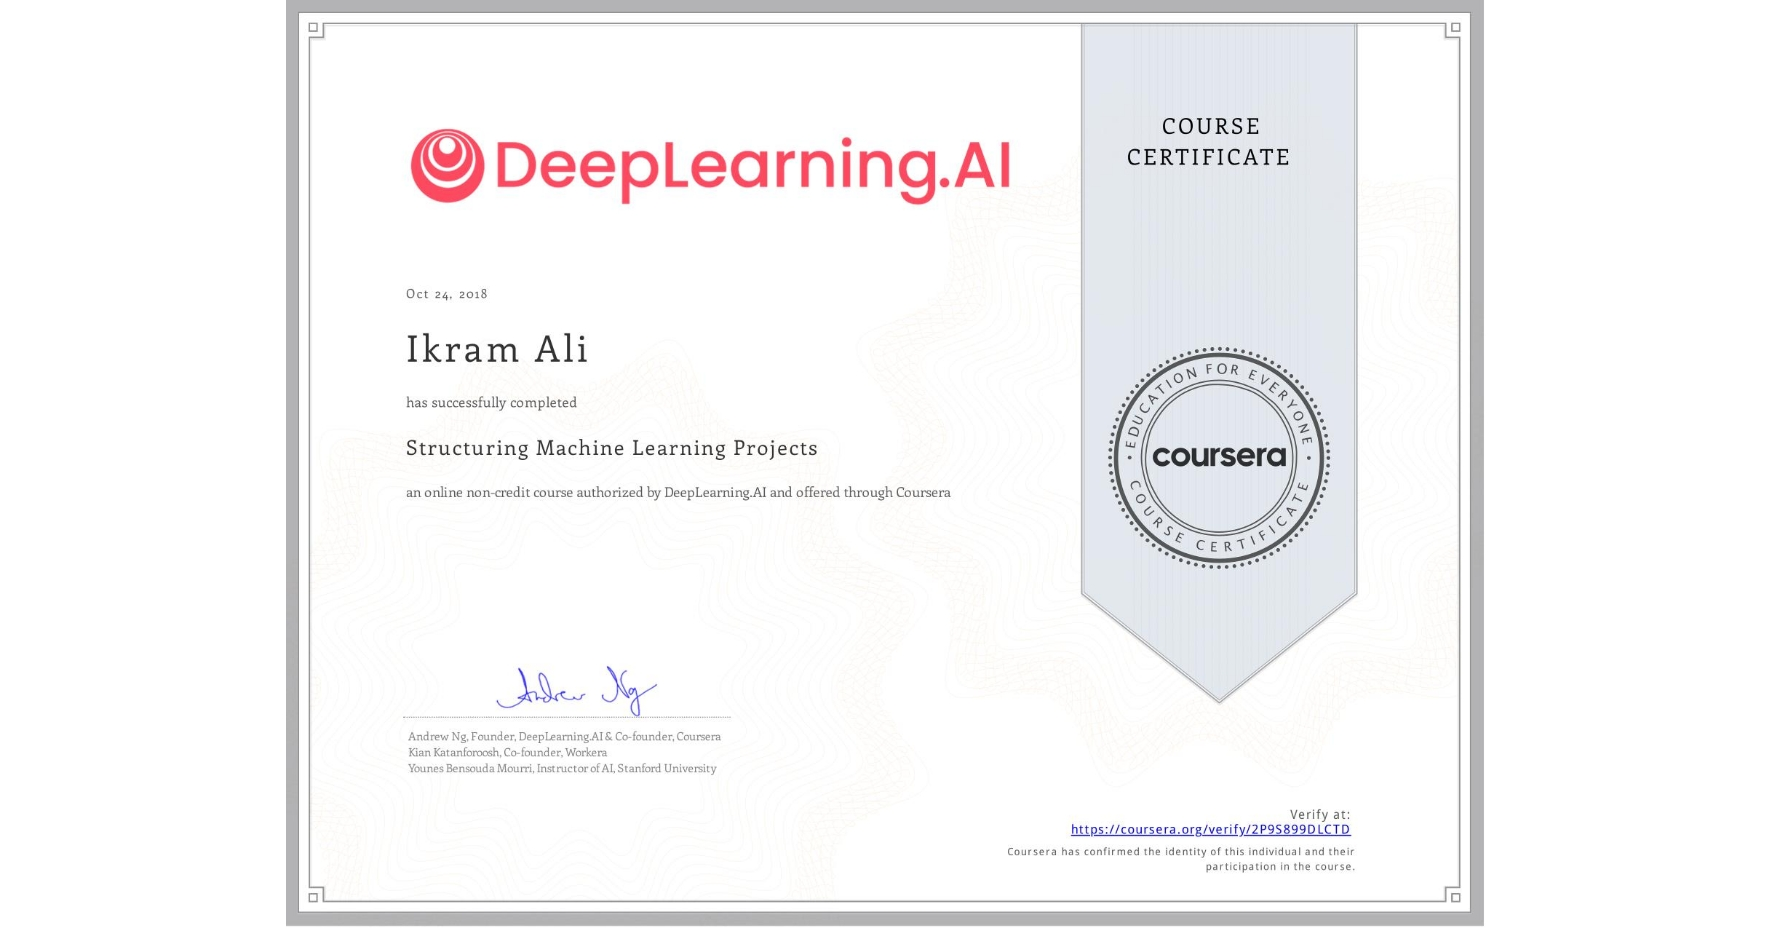 View certificate for Ikram Ali, Structuring Machine Learning Projects, an online non-credit course authorized by DeepLearning.AI and offered through Coursera